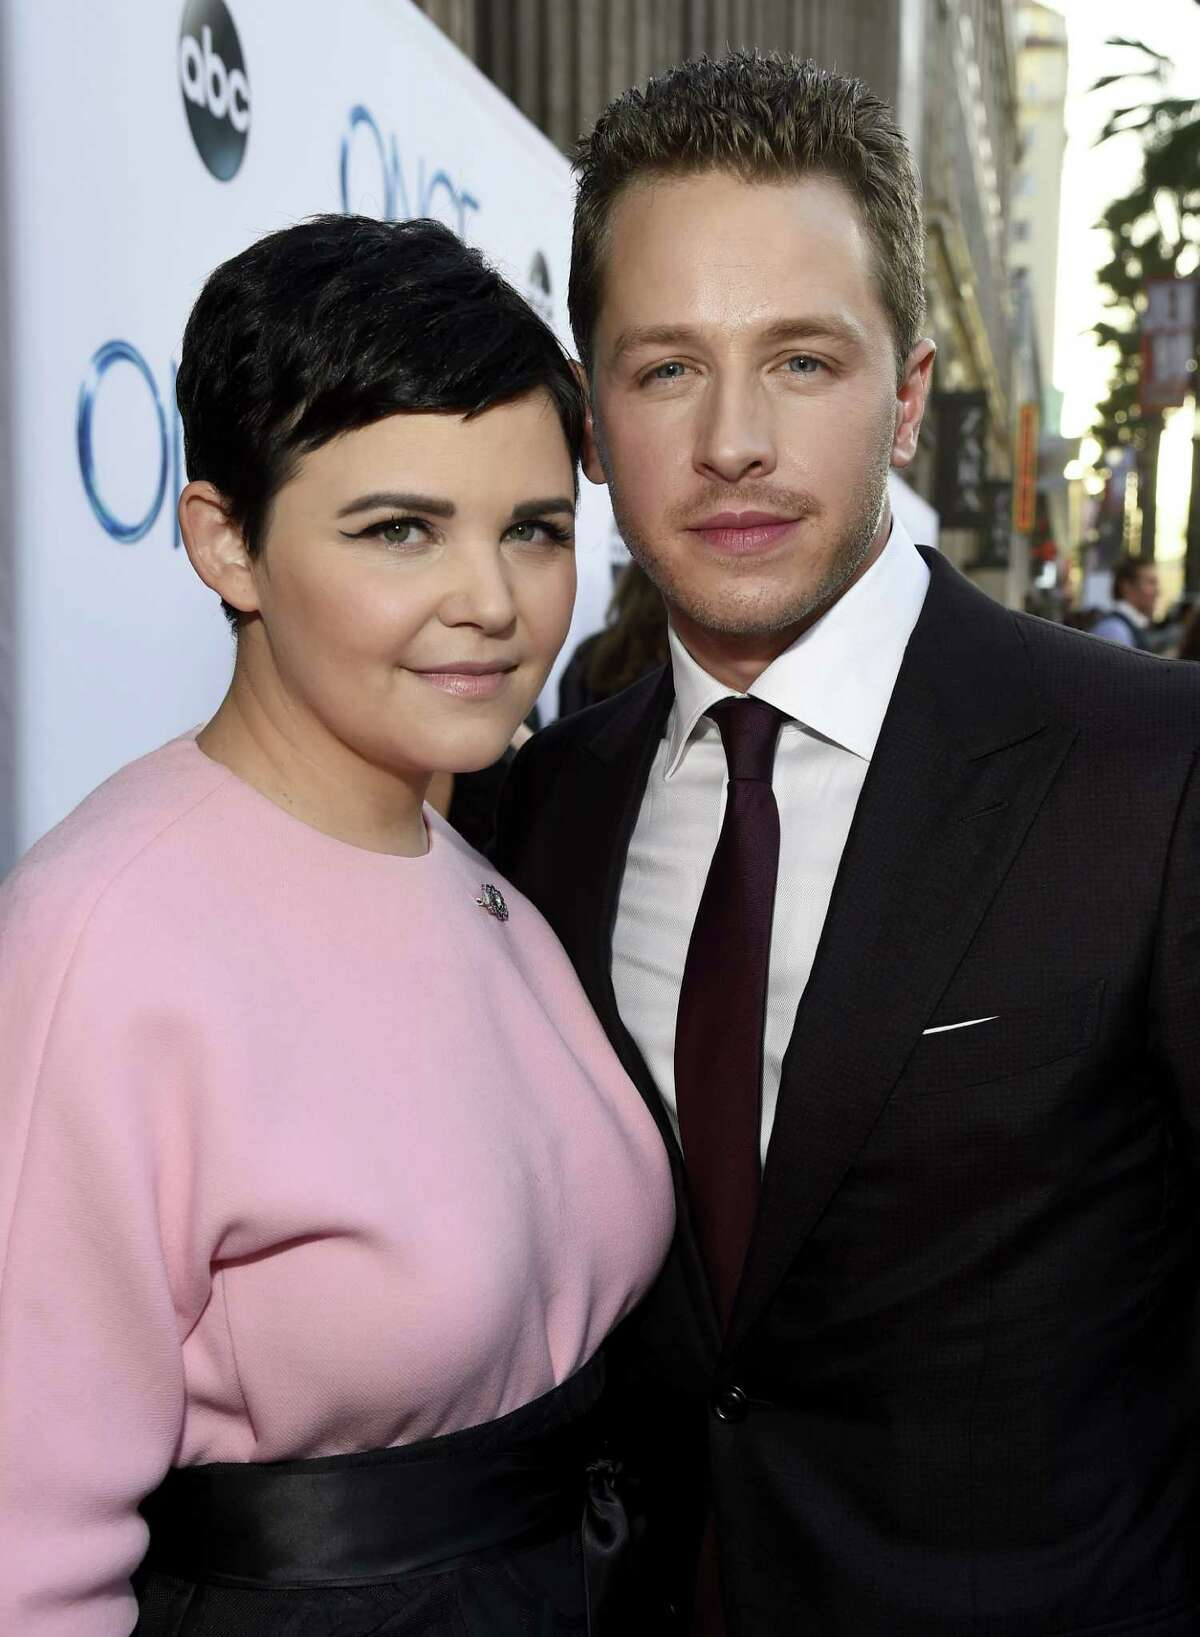 """Actress Ginnifer Godwin and Actor Josh Dallas attend a screening of ABC's """"Once Upon A Time"""" Season 4 at the El Capitan Theatre on September 21, 2014 in Hollywood, California."""